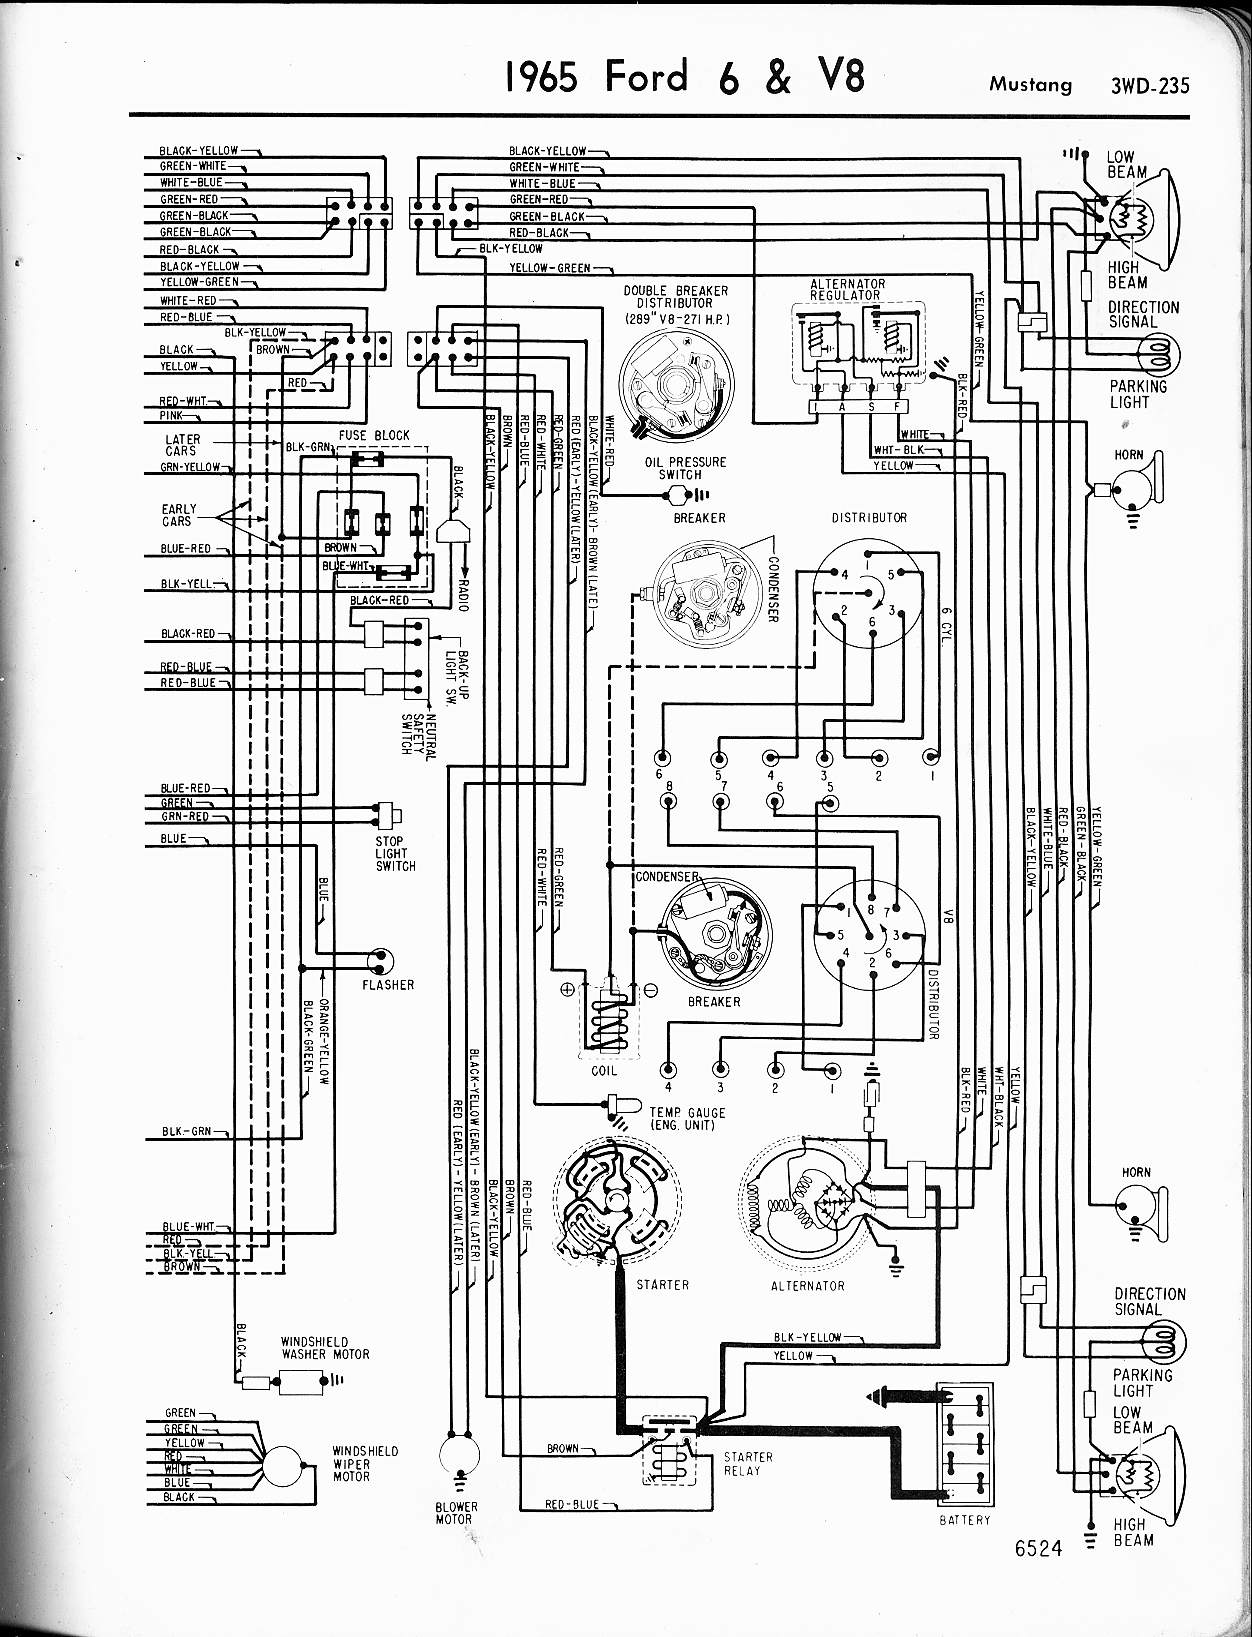 MWire5765 235 100 [ mustang horn wiring diagram ] 63 impala fuse box on 63 mustang wiring harness diagram at bayanpartner.co